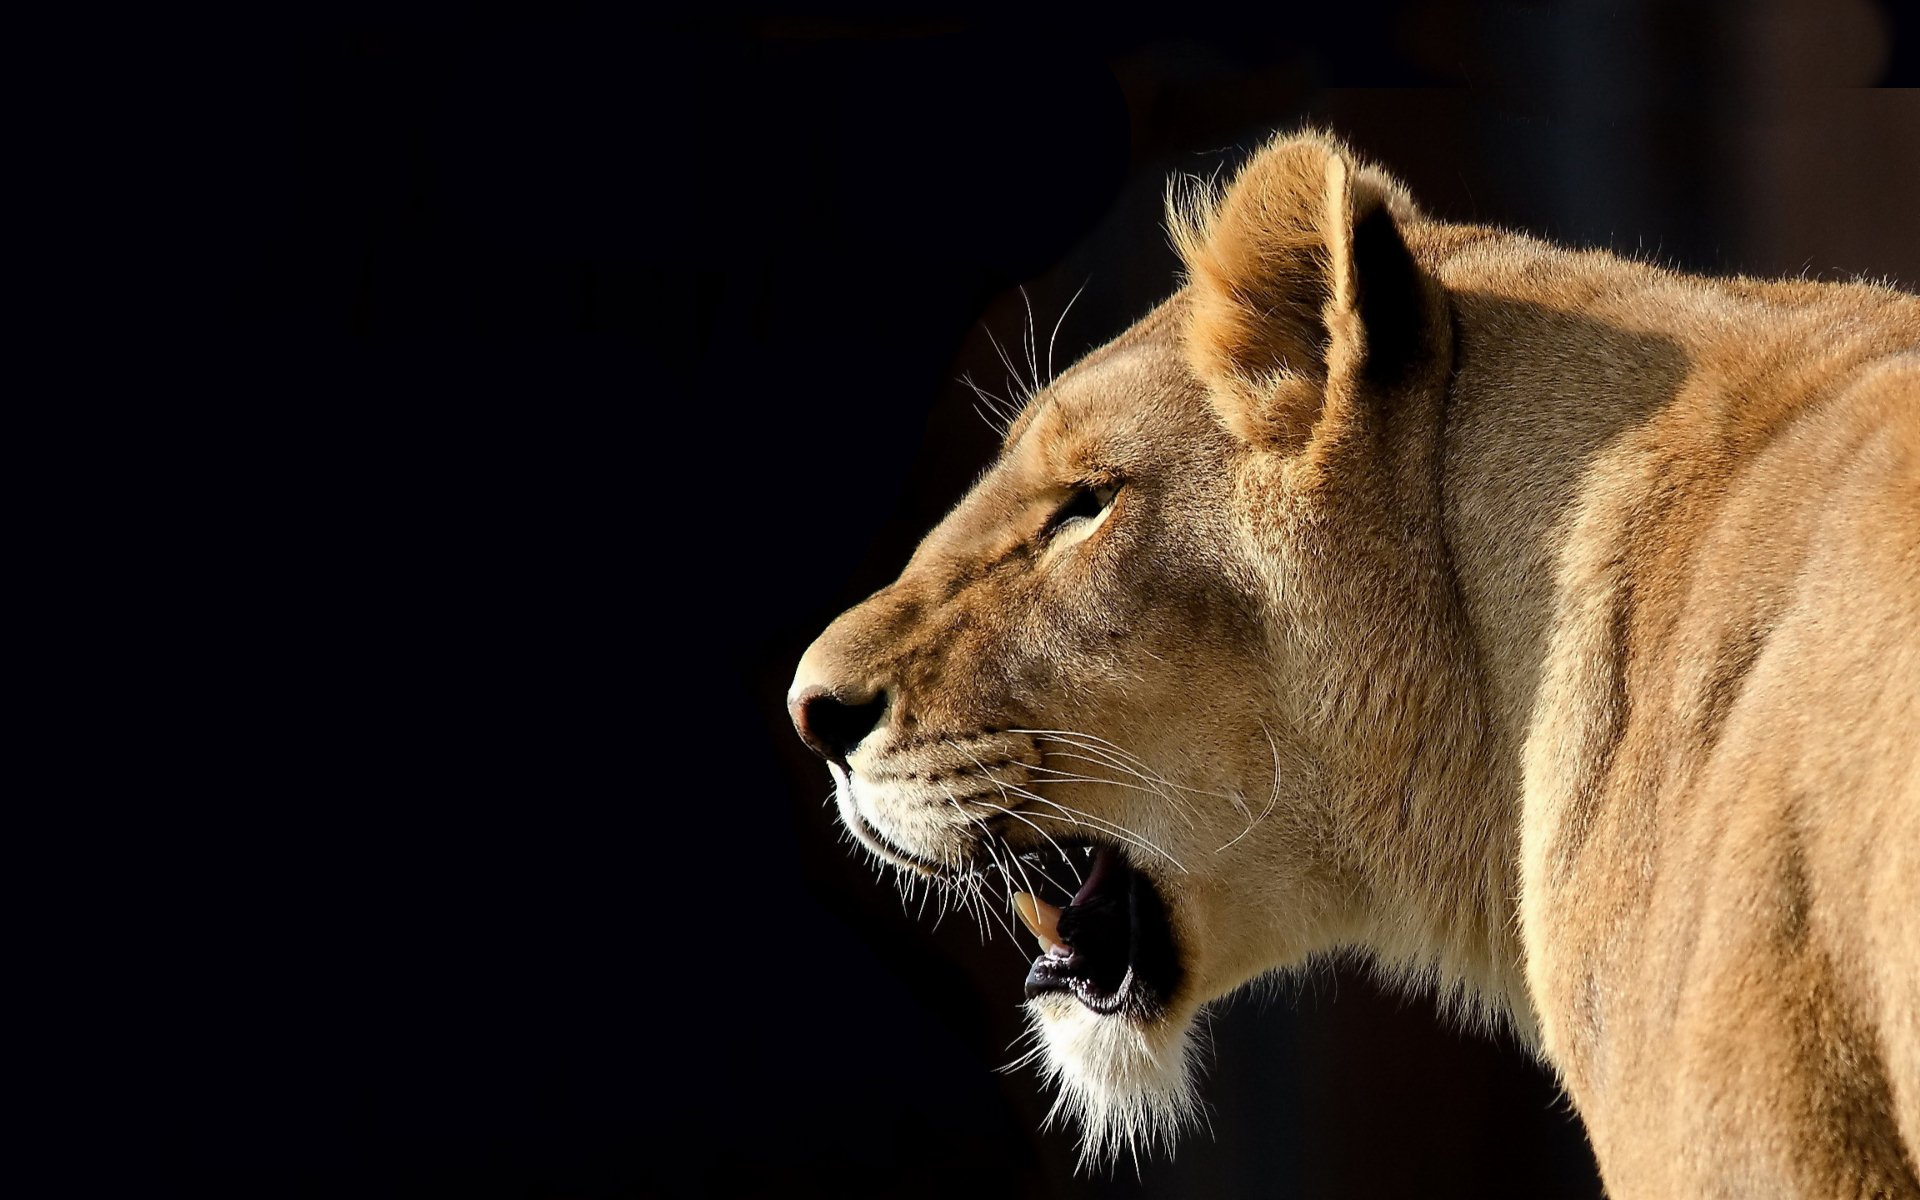 Lioness Full HD Wallpaper and Background Image | 1920x1200 | ID:288232